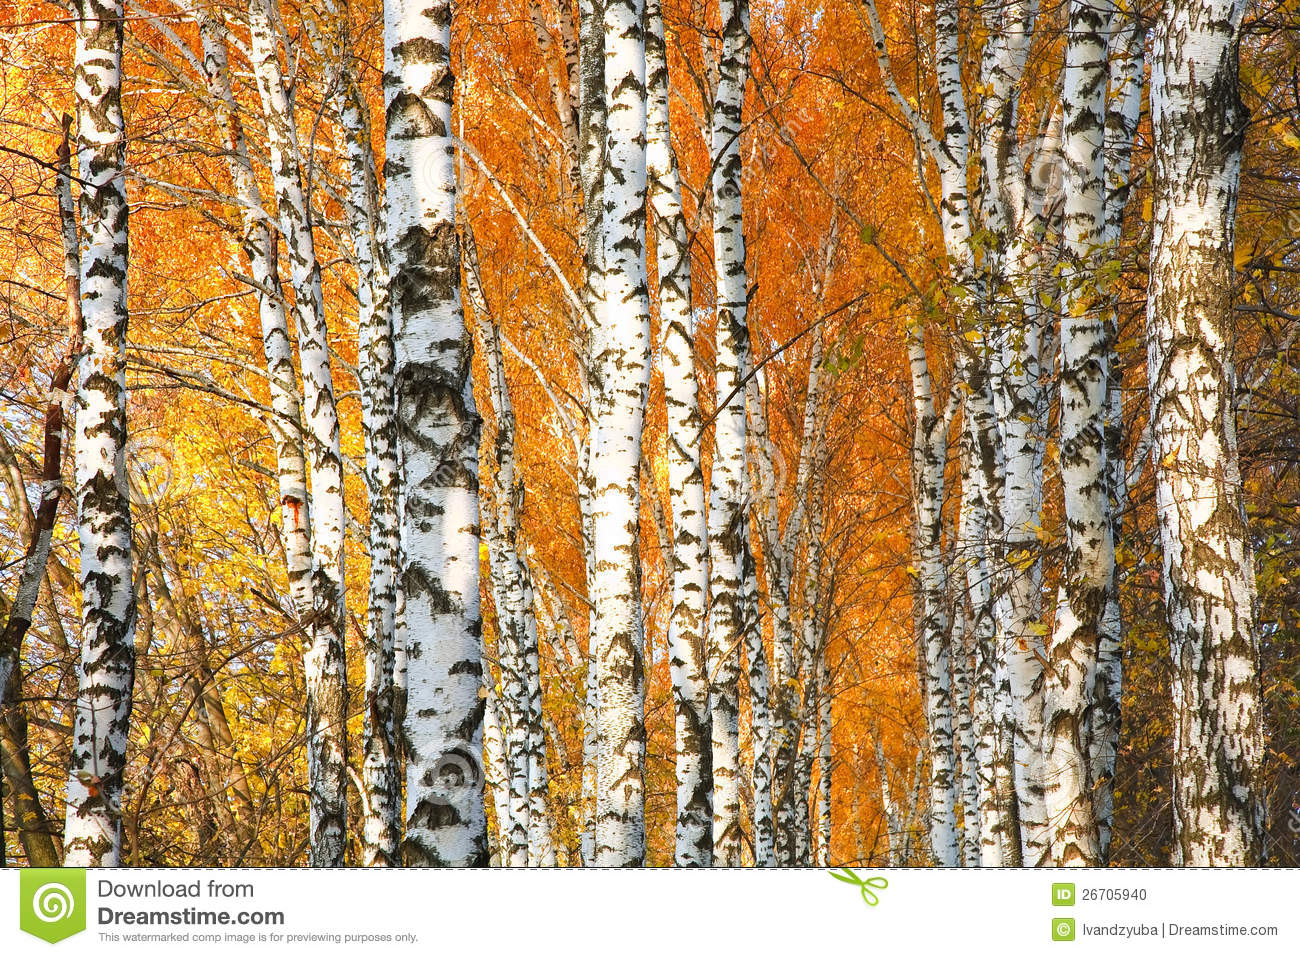 Free Fall Color Wallpaper Autumn Yellowed Birch Forest Stock Photo Image 26705940